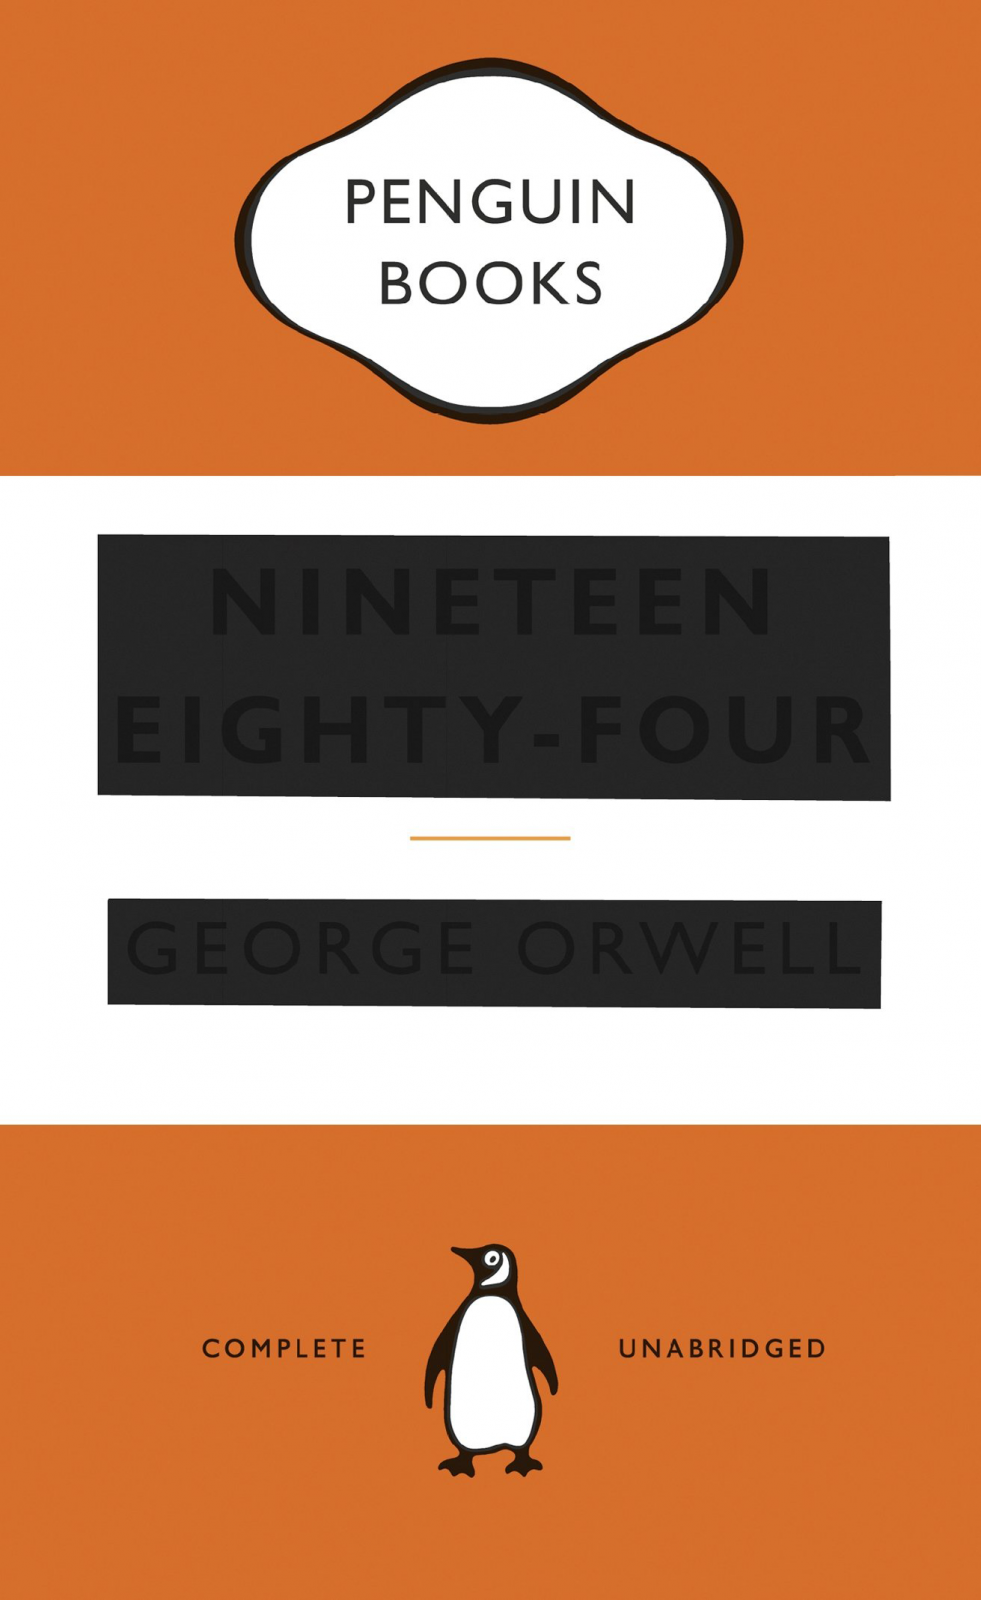 1984 By George Orwell Paperback Book thumbnails